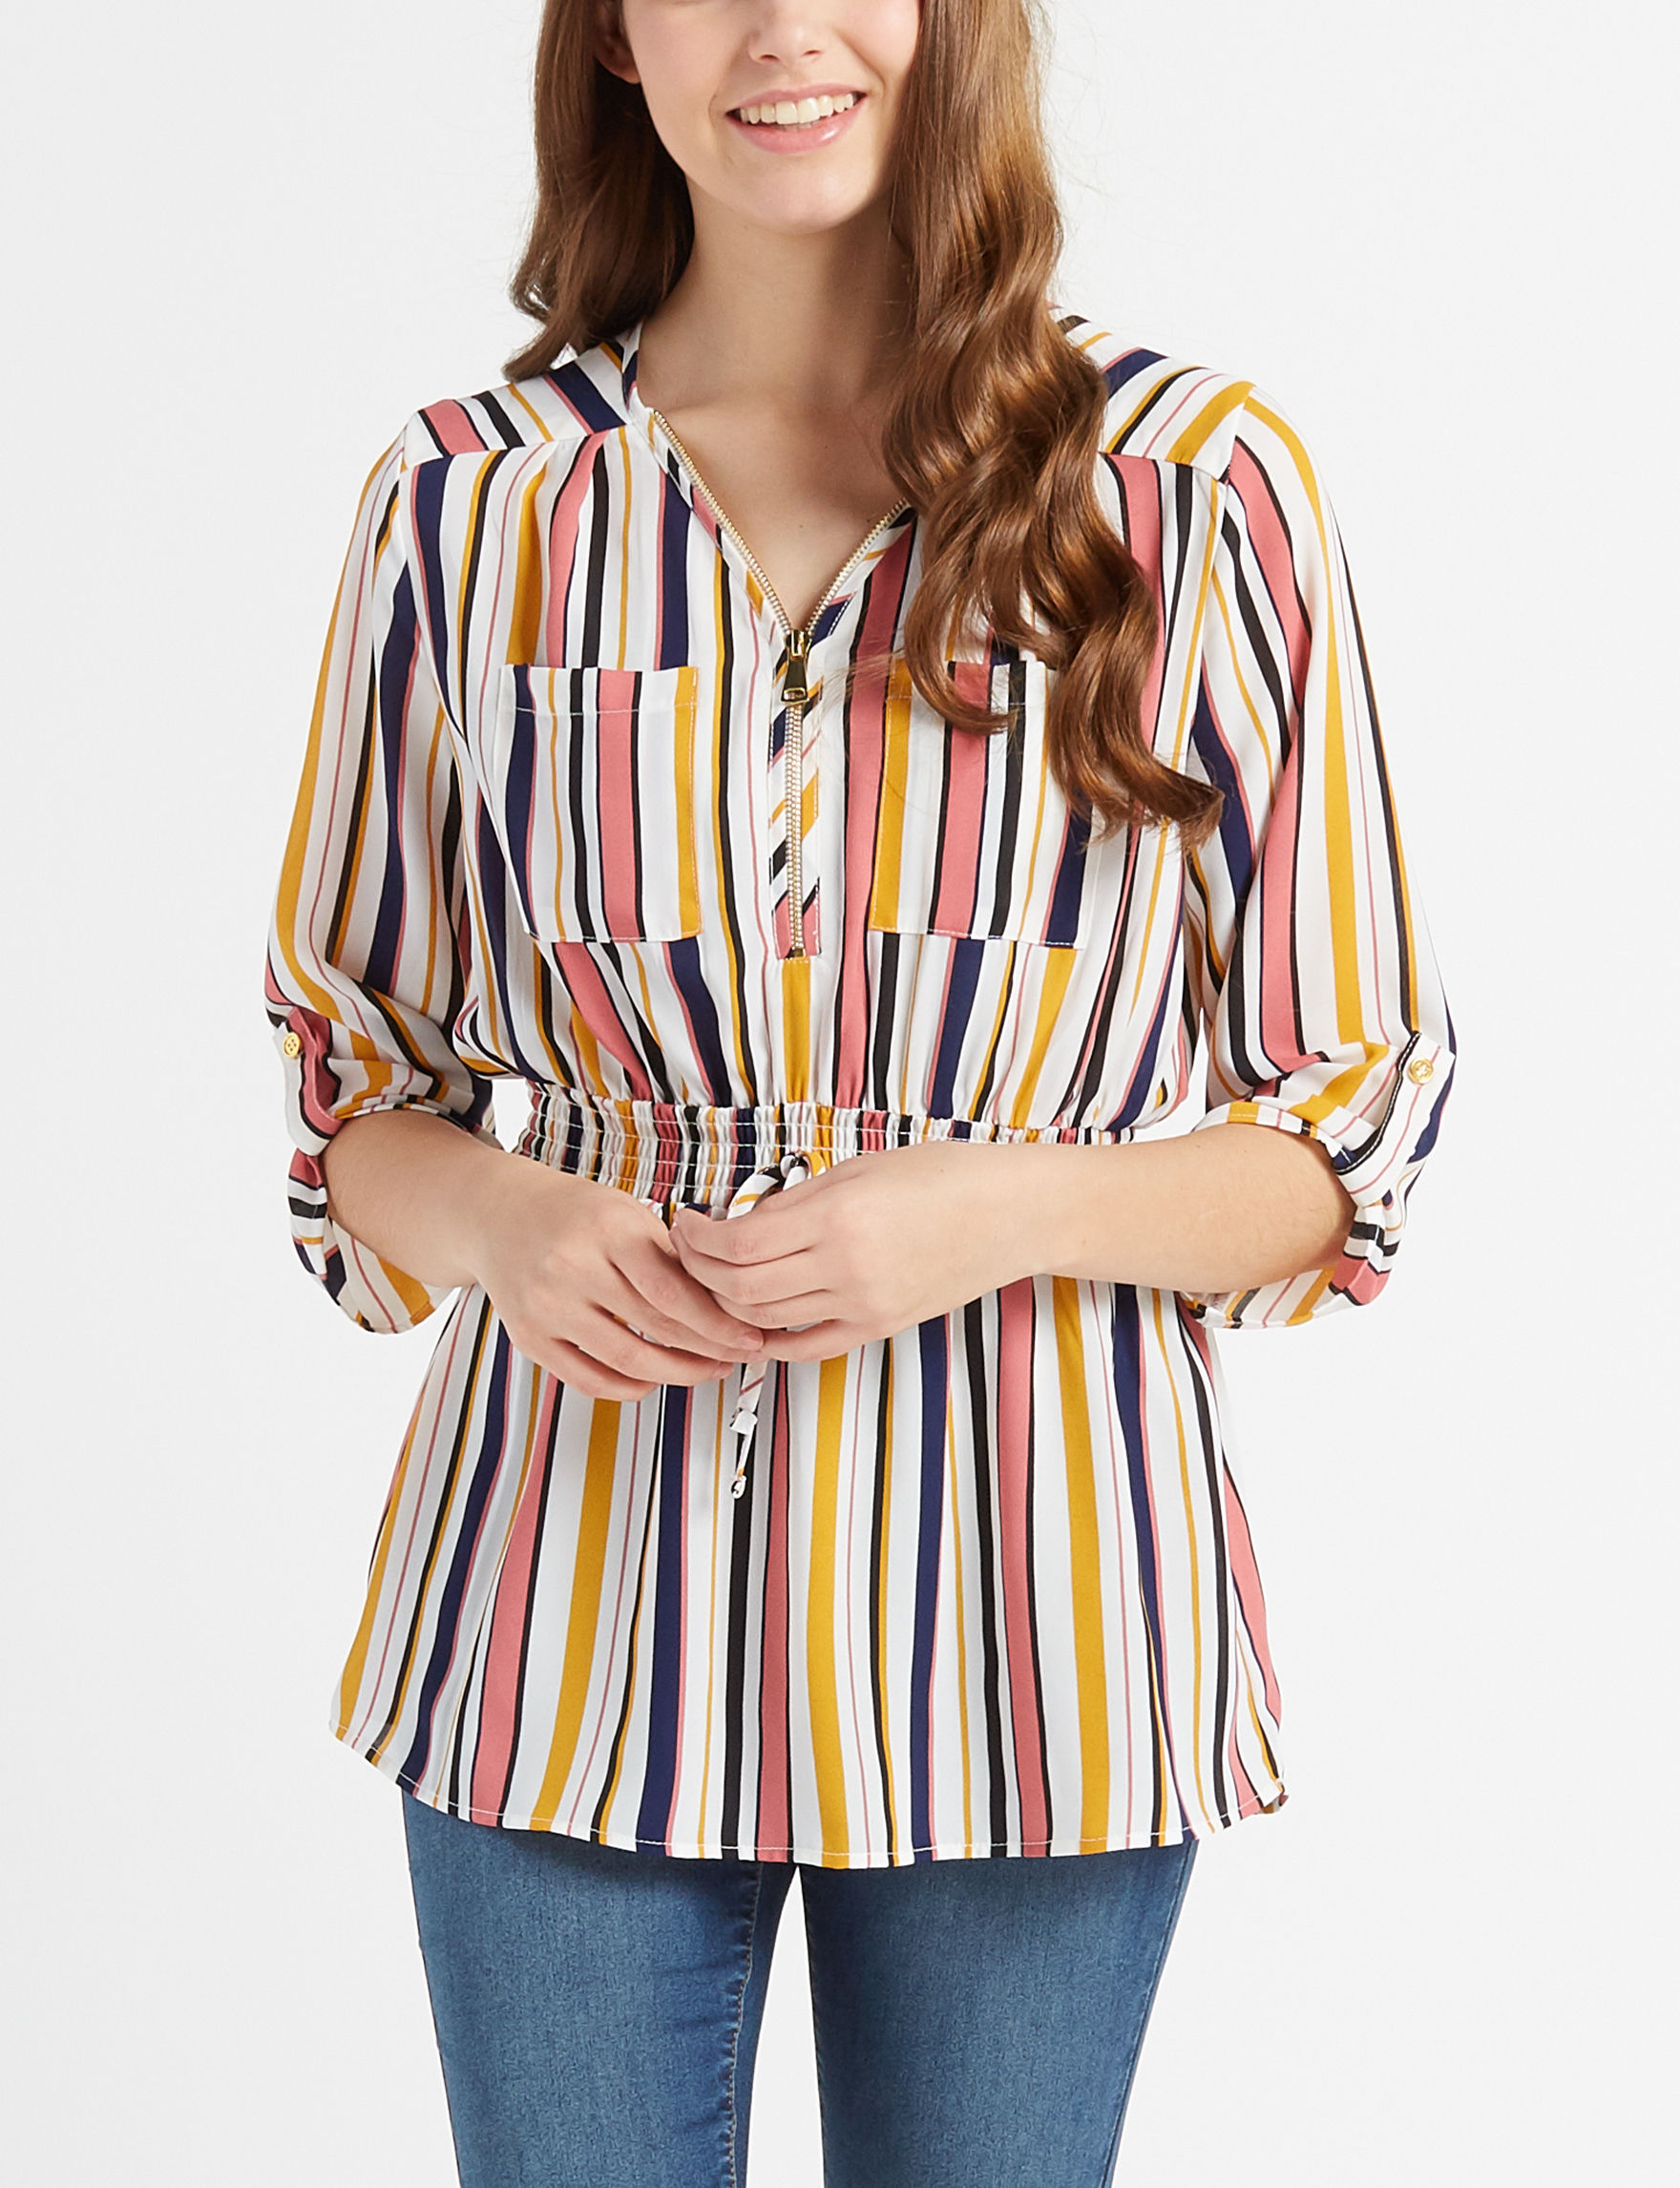 Justify Pink / Blue / Yellow Shirts & Blouses